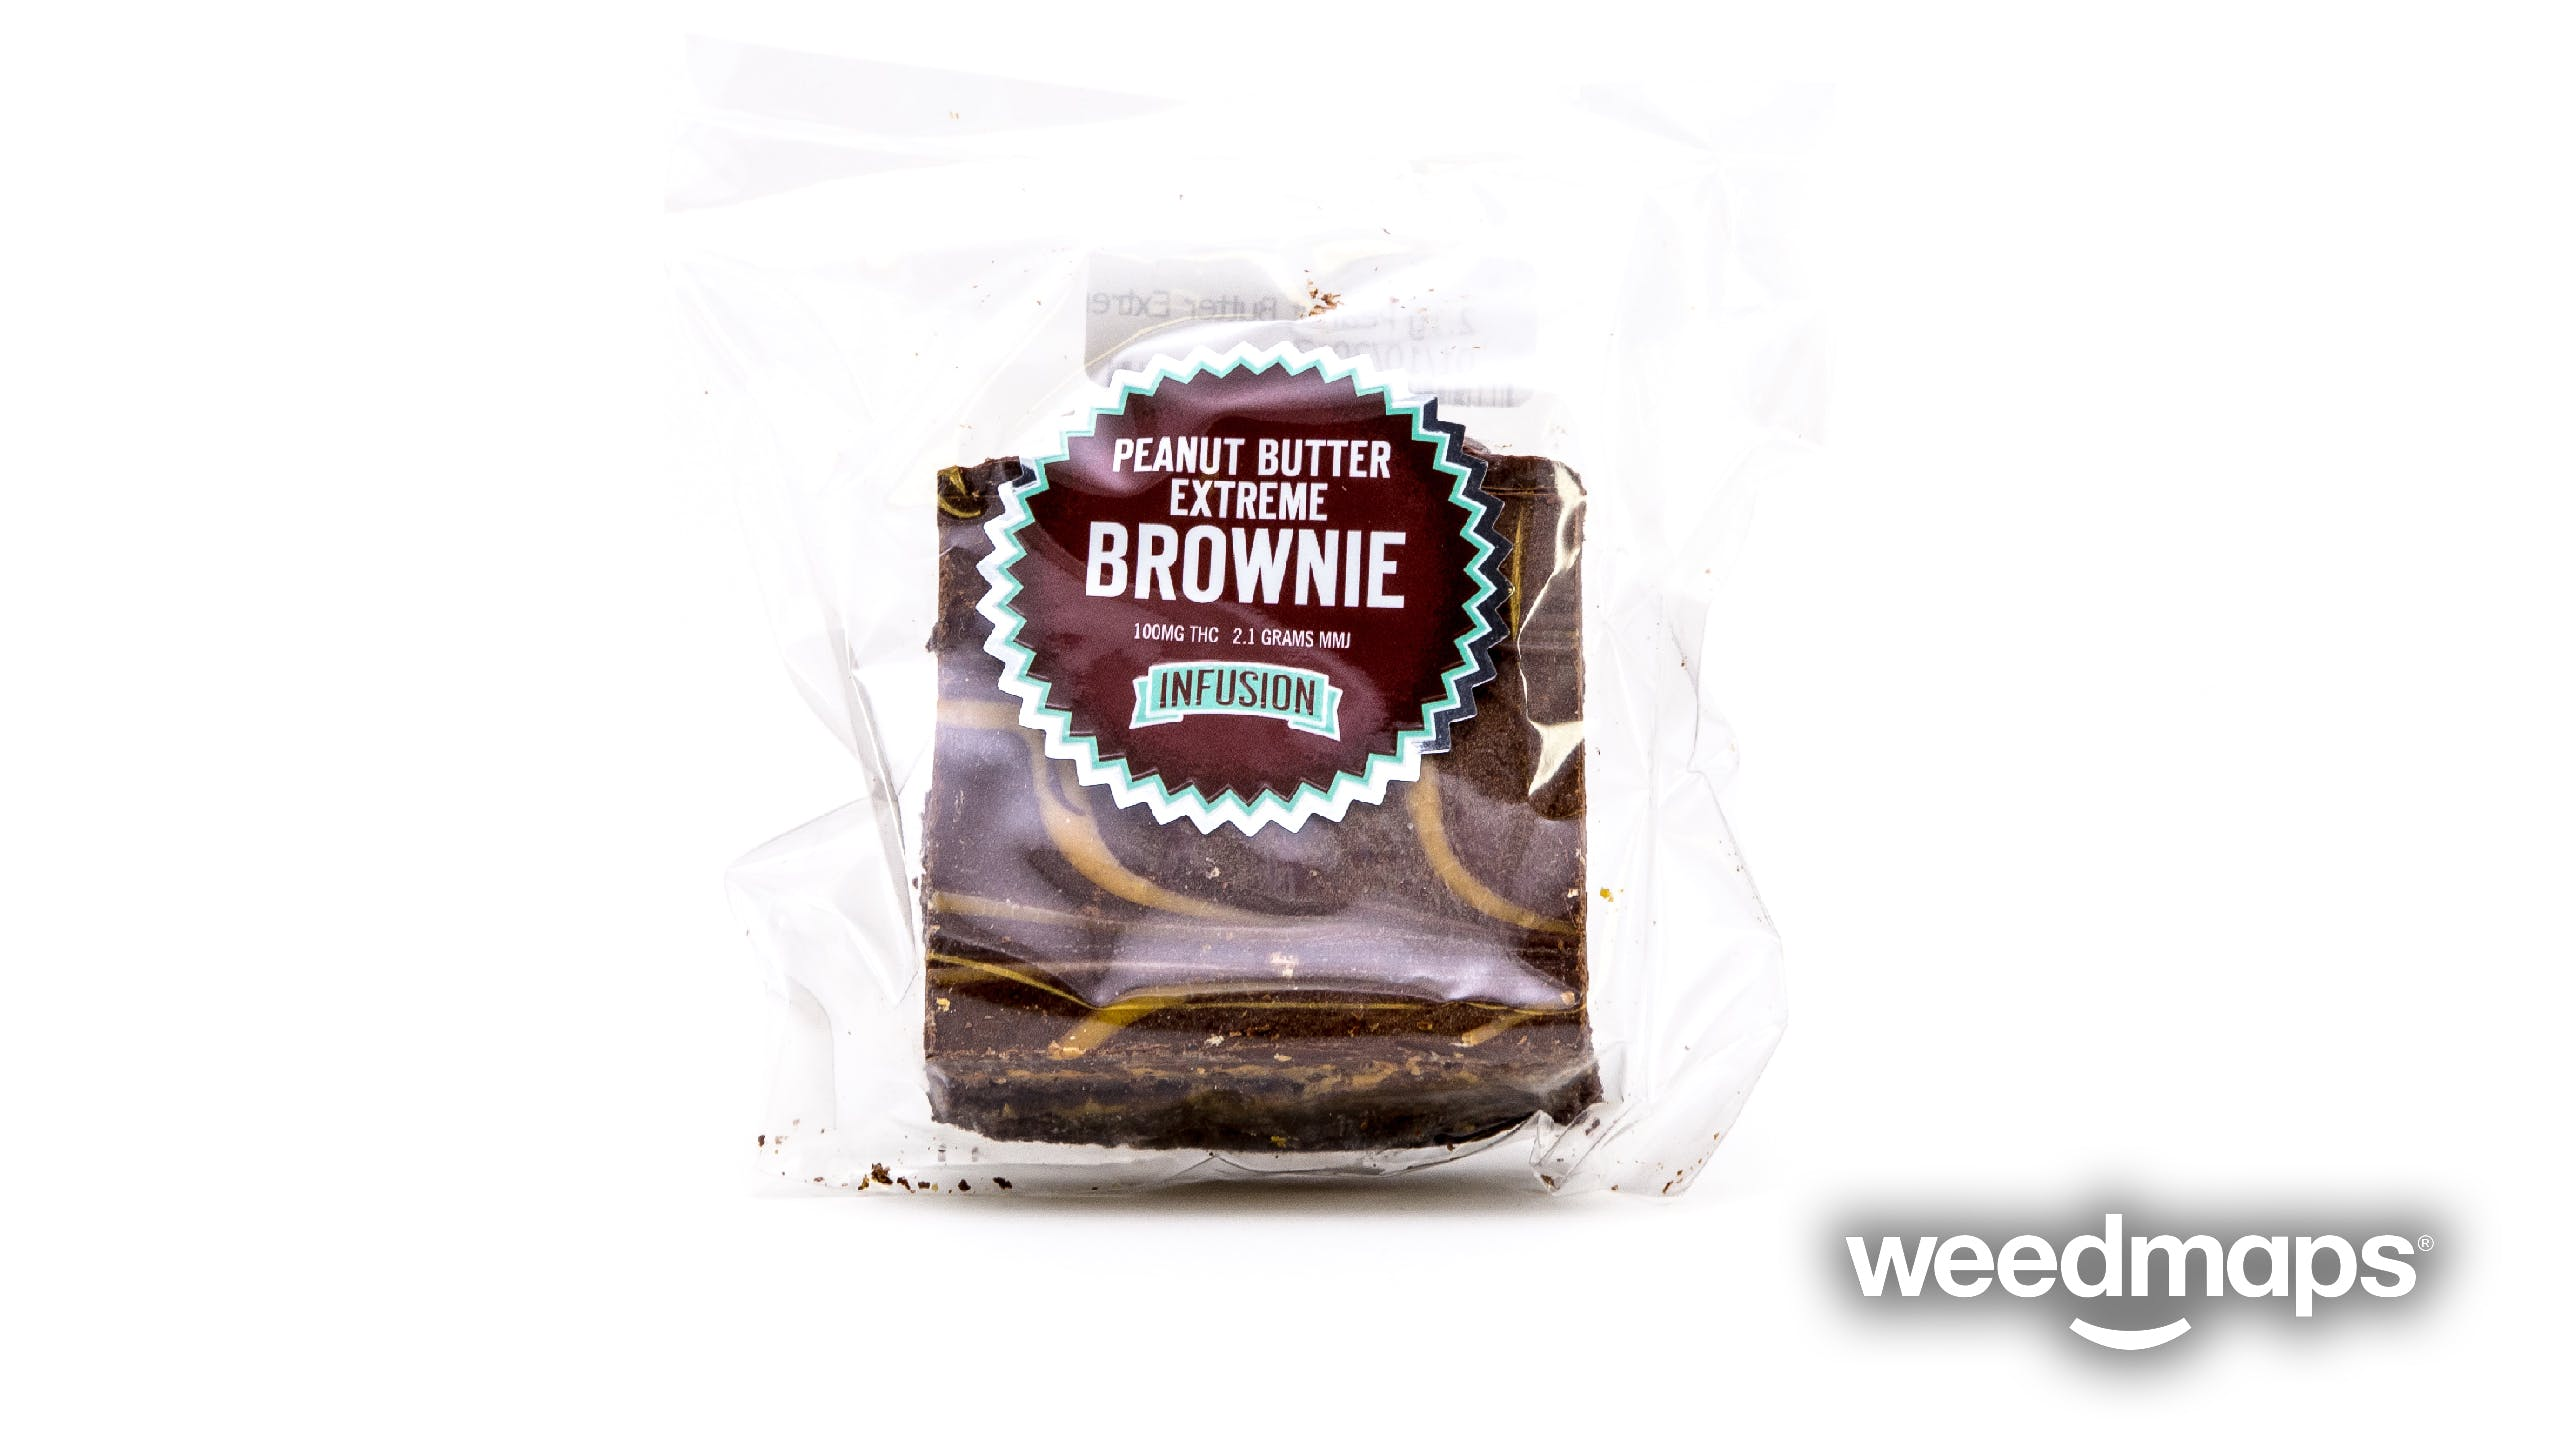 edible-infusion-100mg-peanut-butter-extreme-brownie